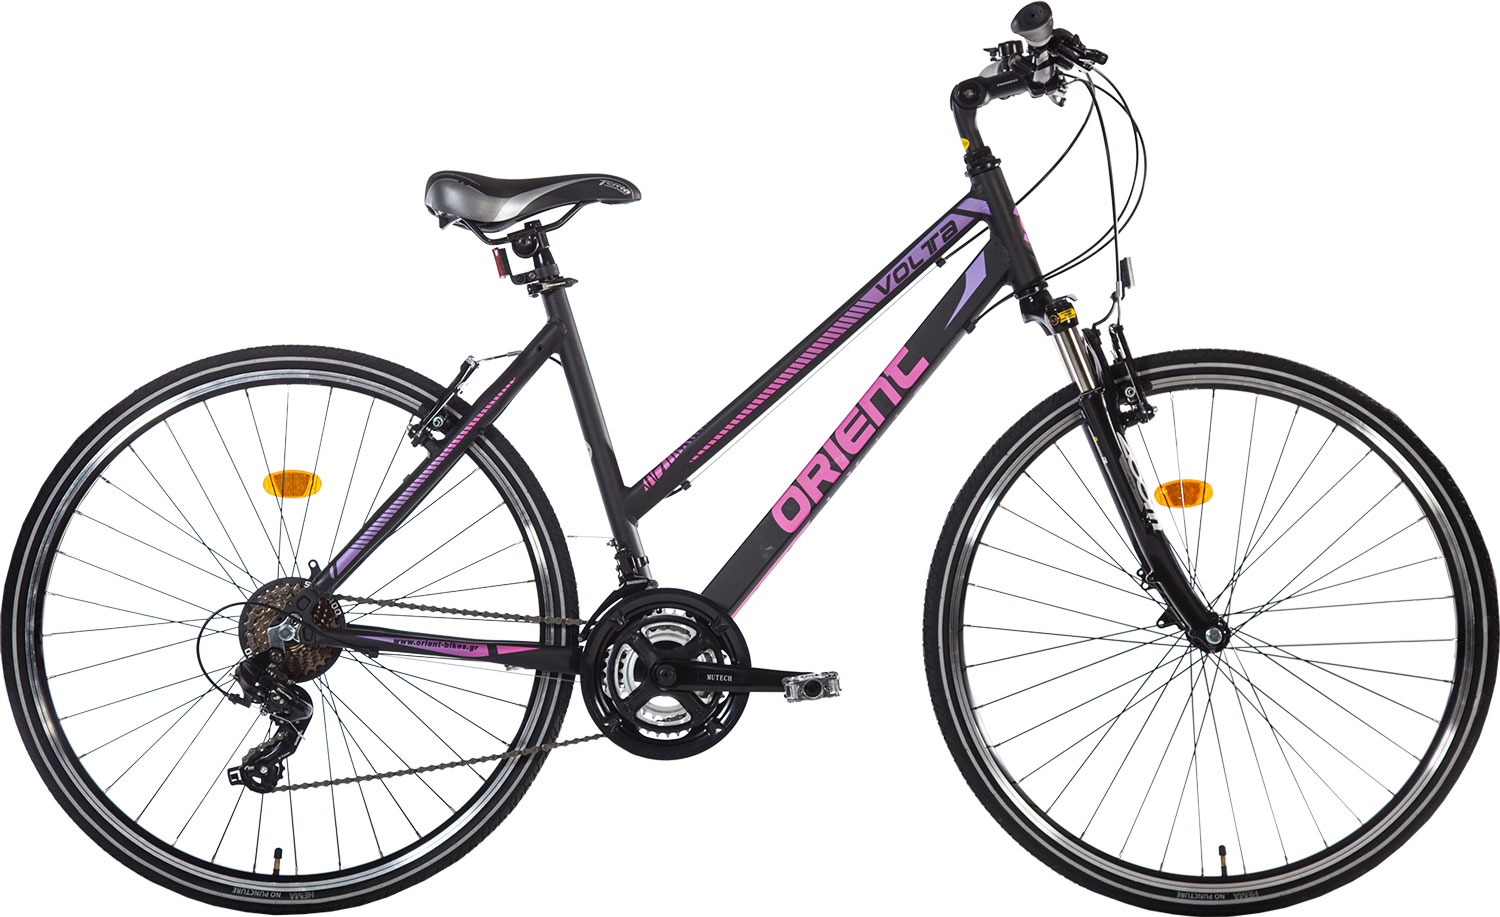 VOLTA lady 21sp. bike image